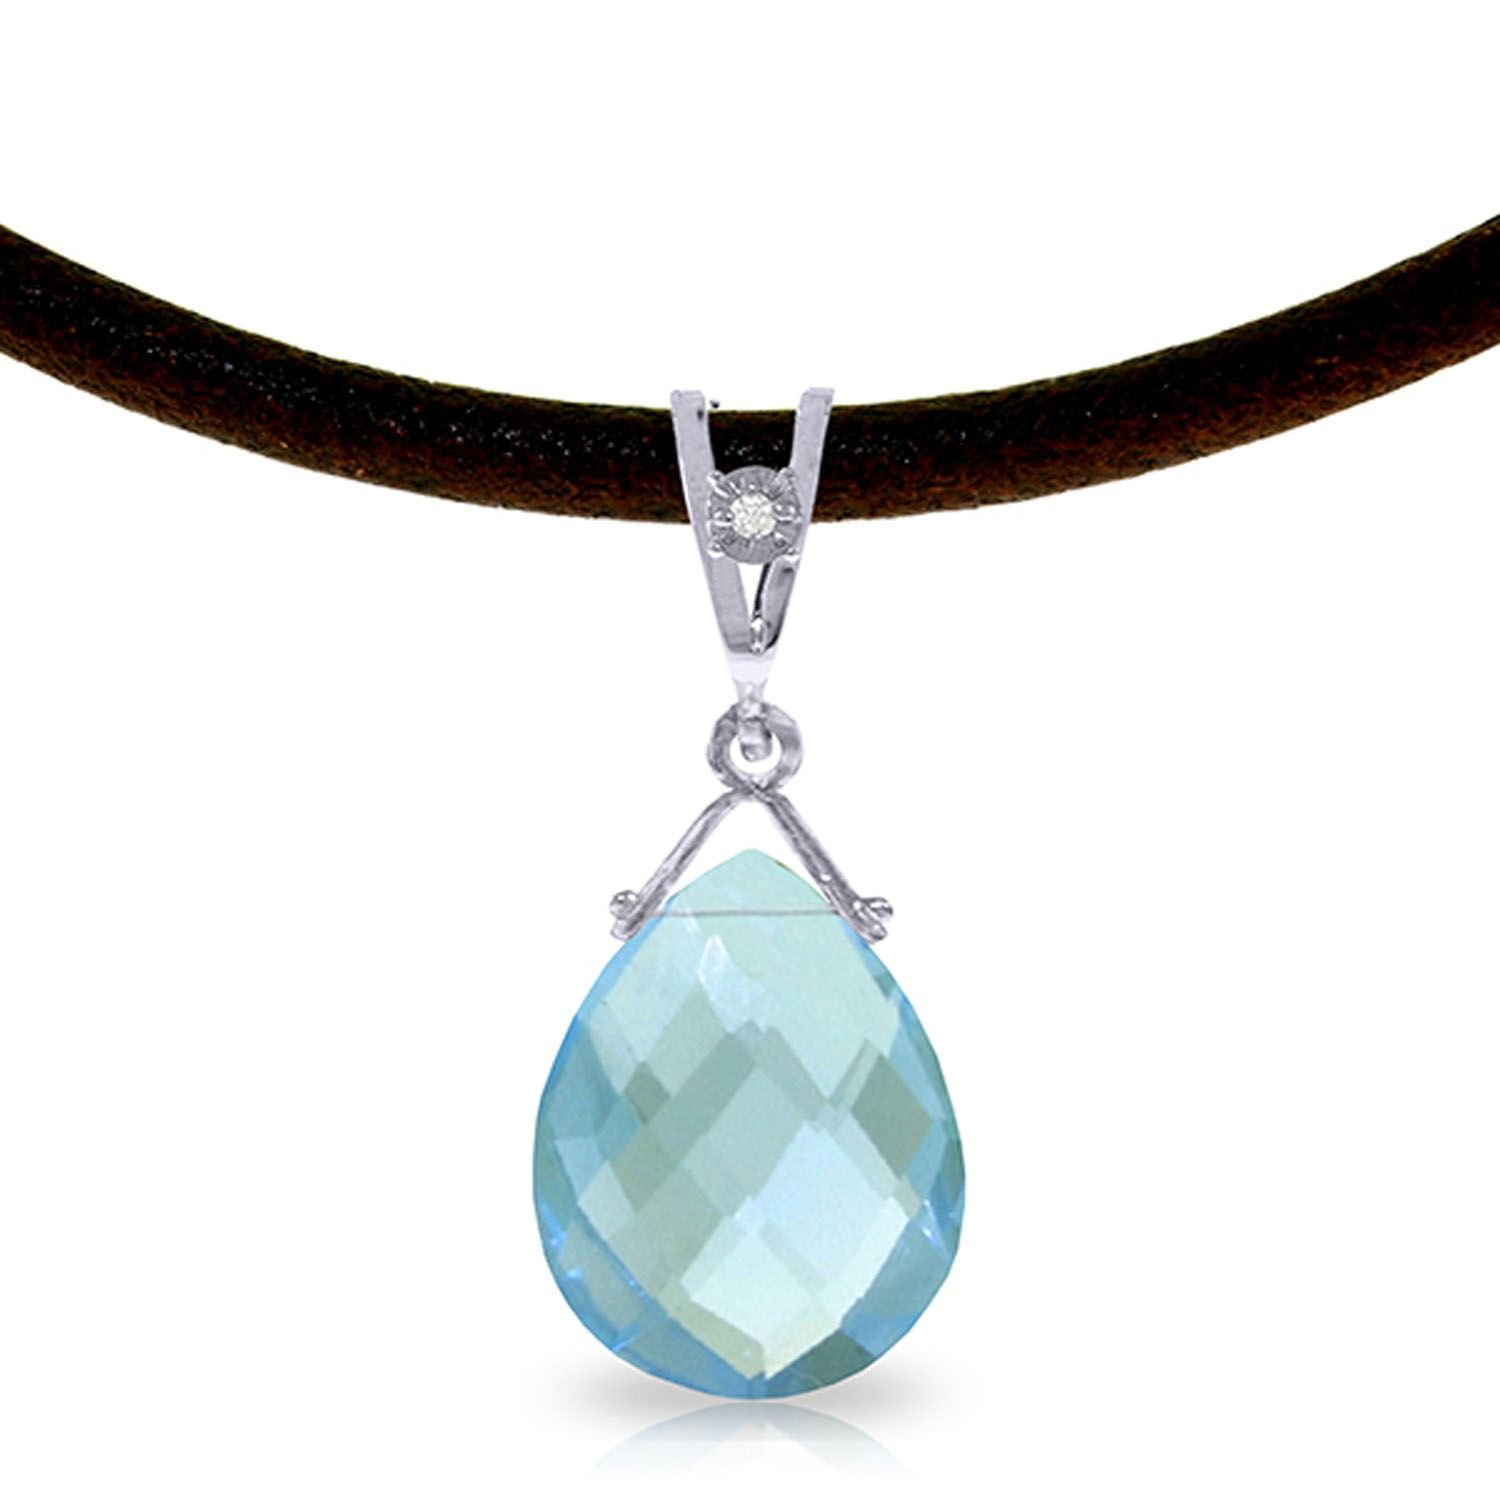 ALARRI 6.51 Carat 14K Solid White Gold Lotta Love Blue Topaz Diamond Necklace with 22 Inch Chain Length